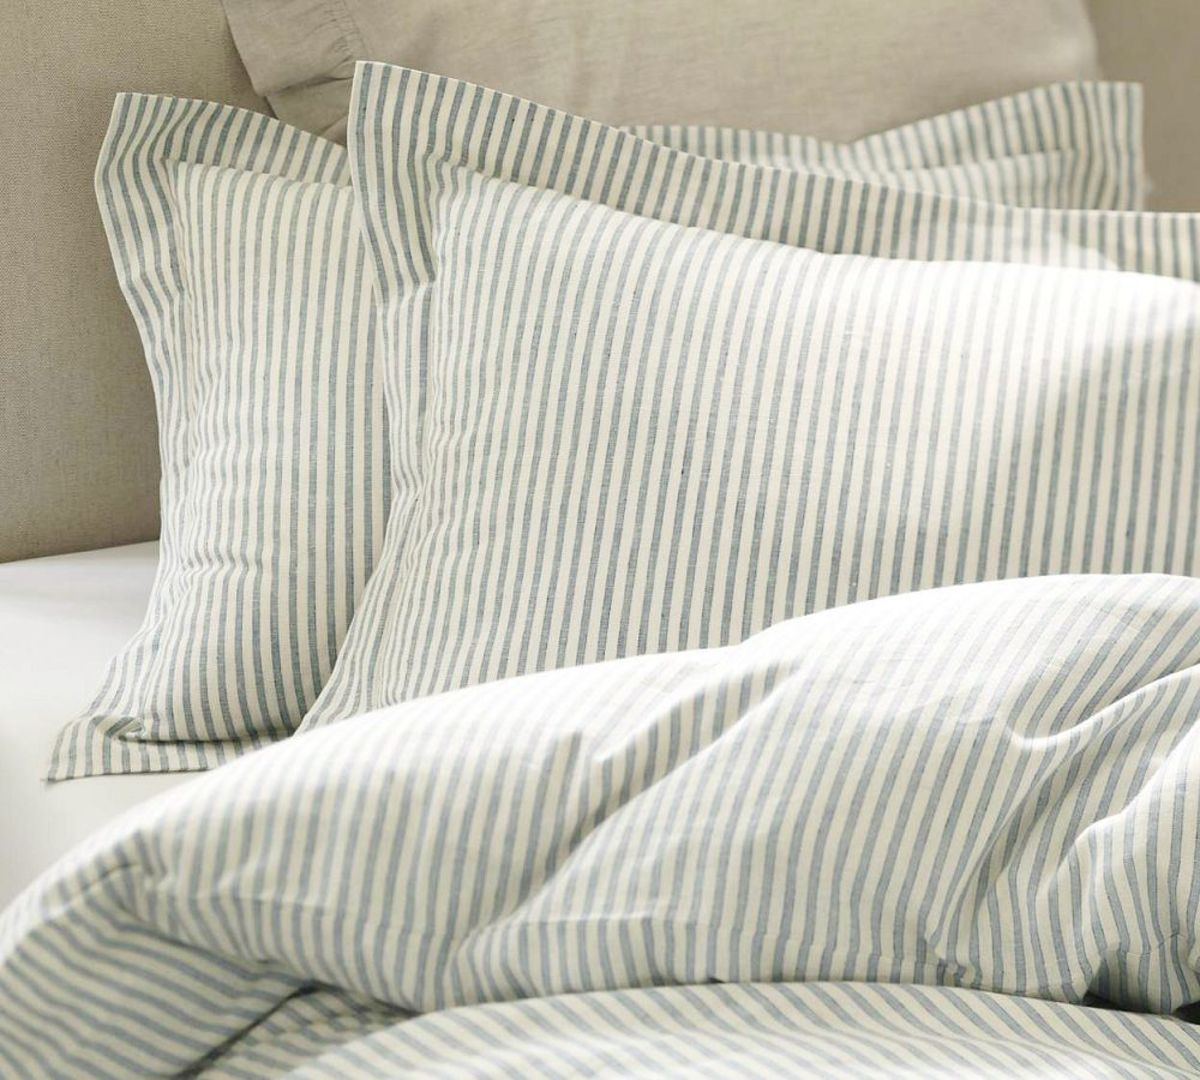 How to Make an Inexpensive Duvet Comforter Cover Using Flat Sheets